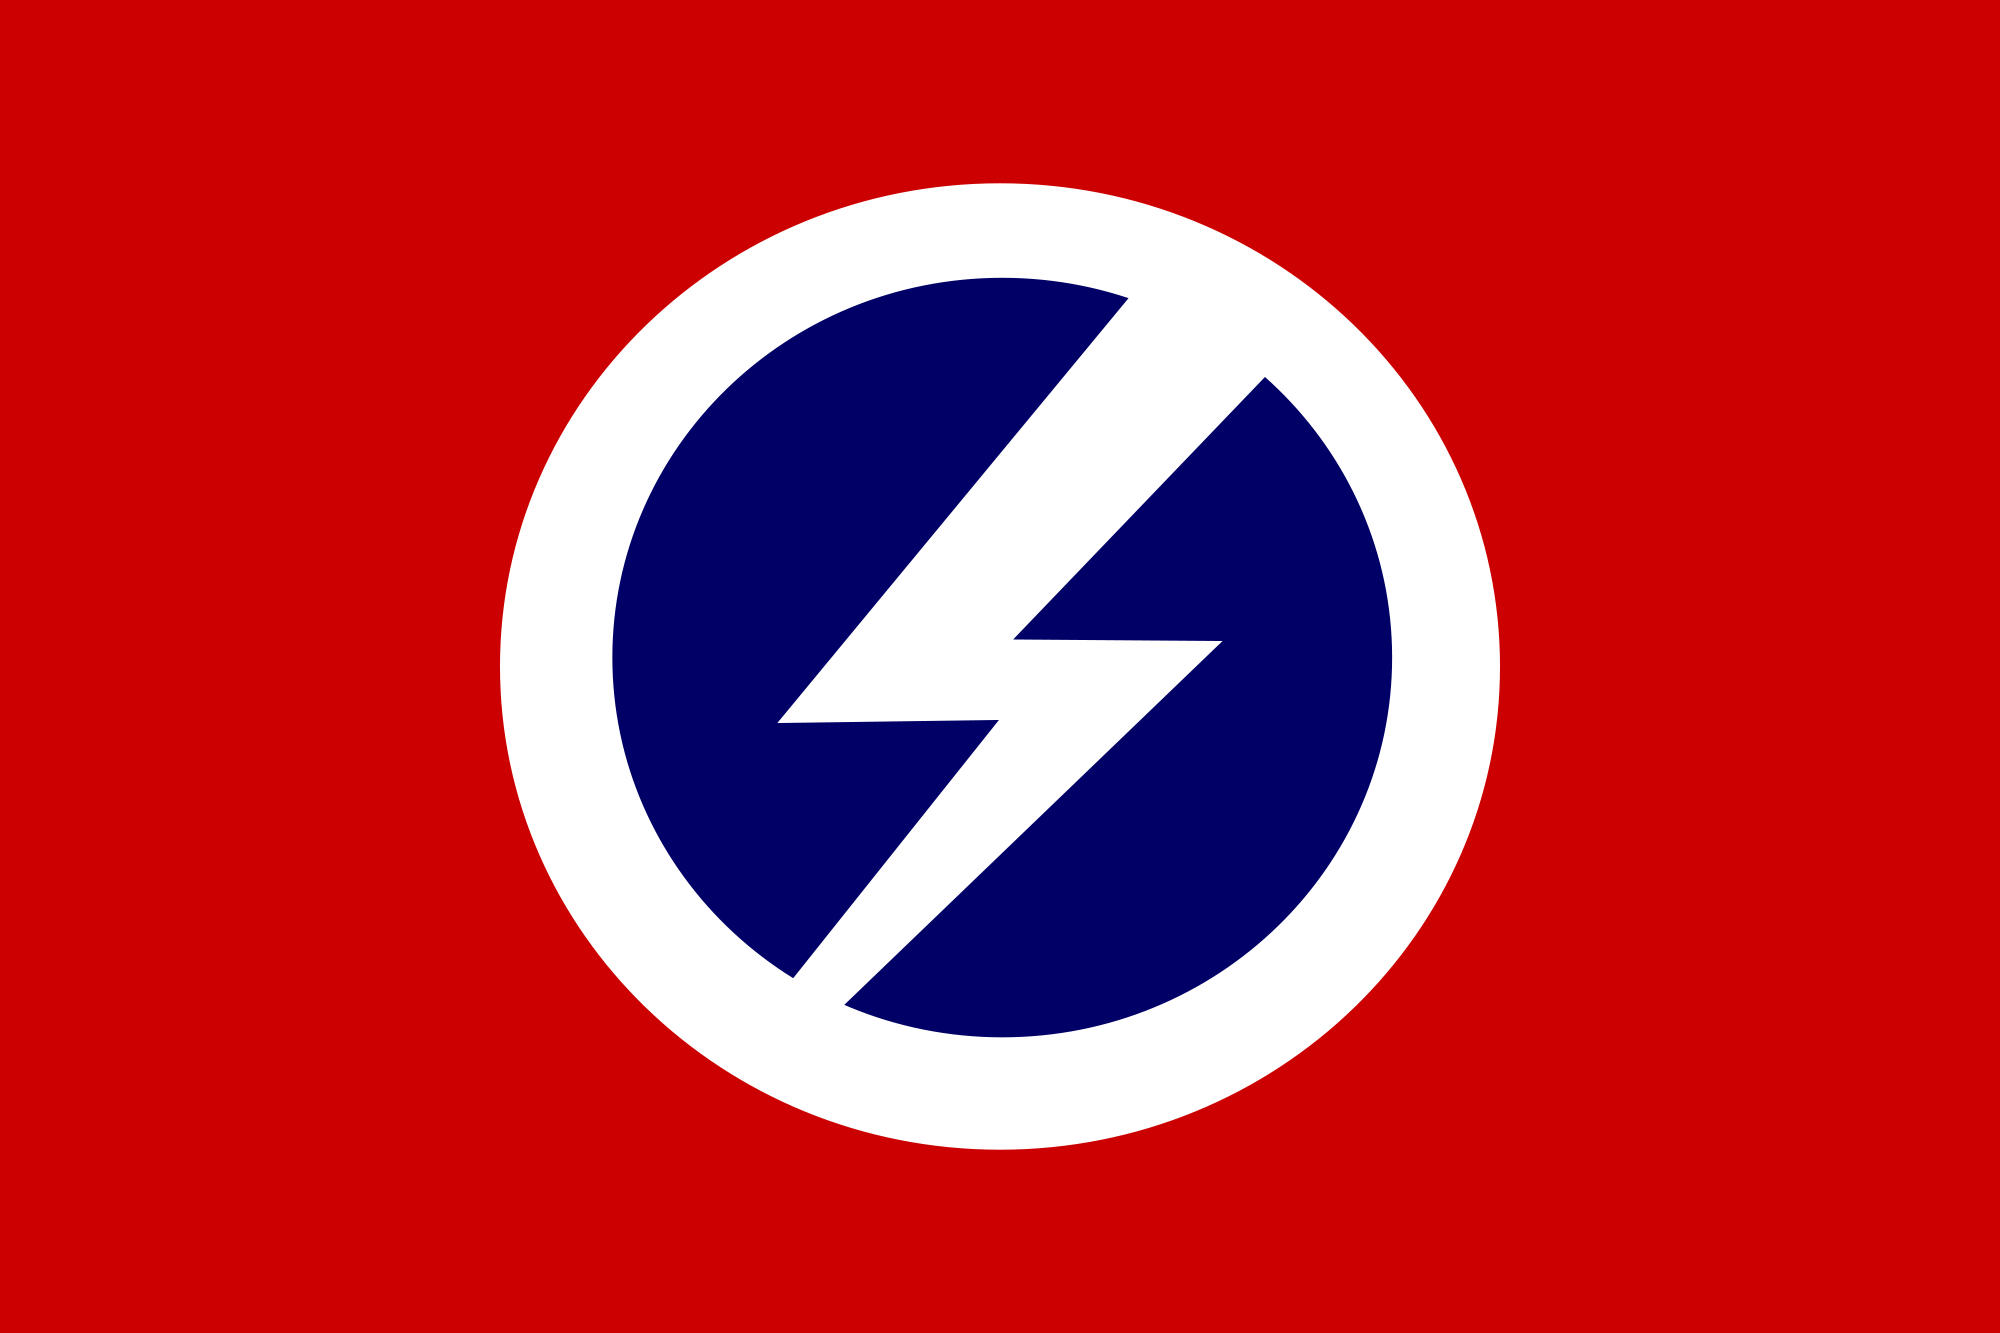 British union of Fascists HD Wallpaper